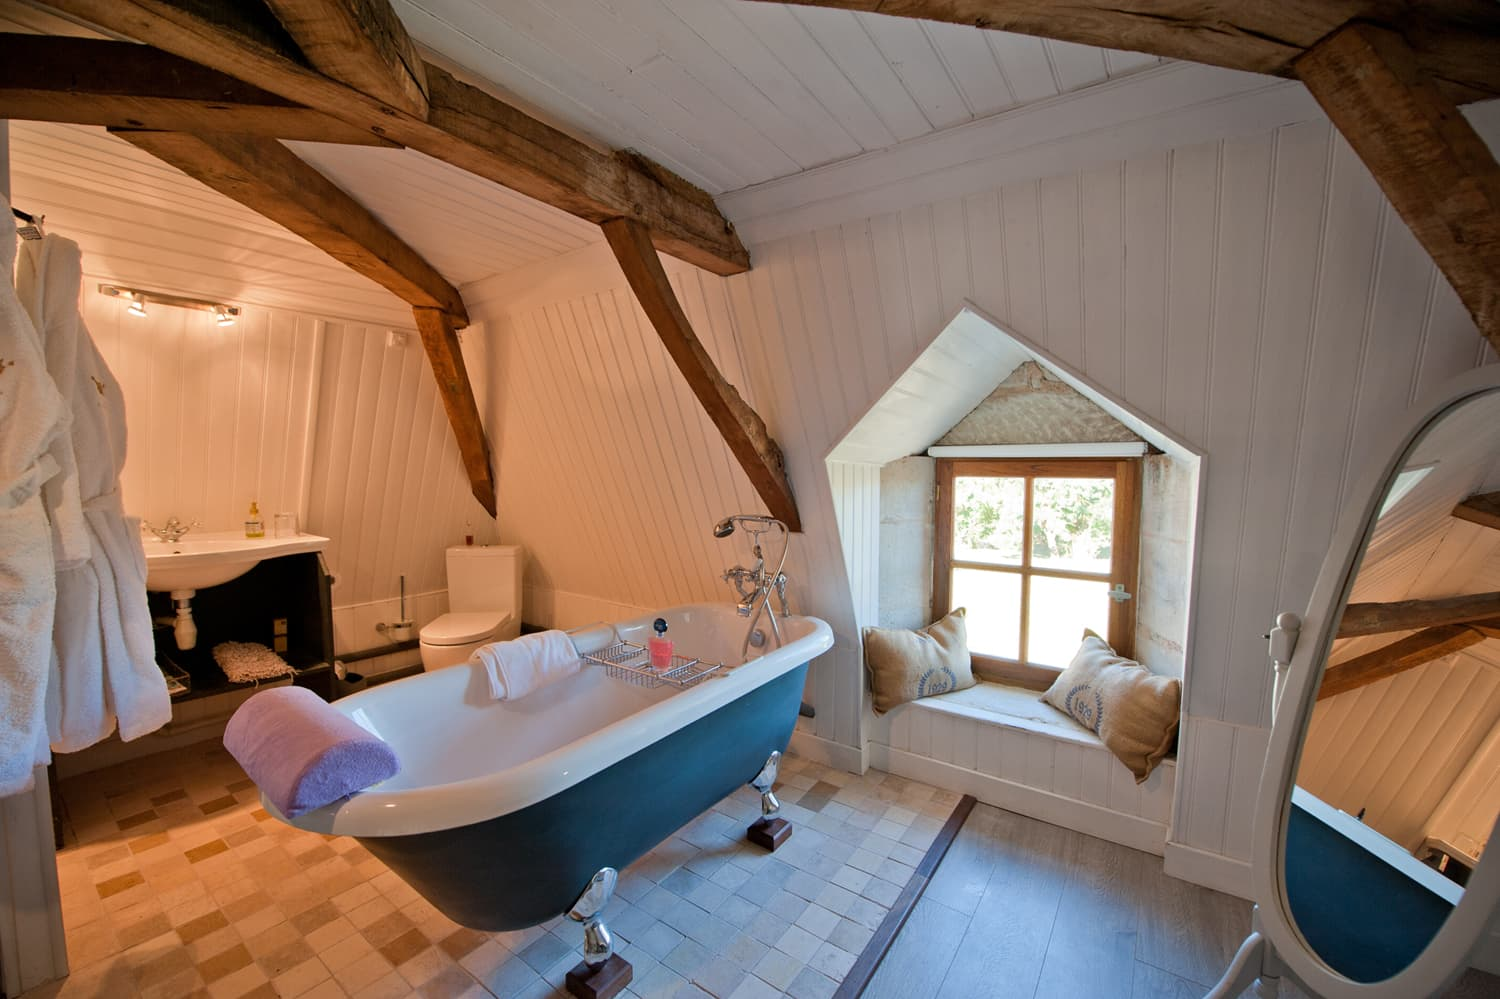 Ensuite bathroom in Dordogne holiday home